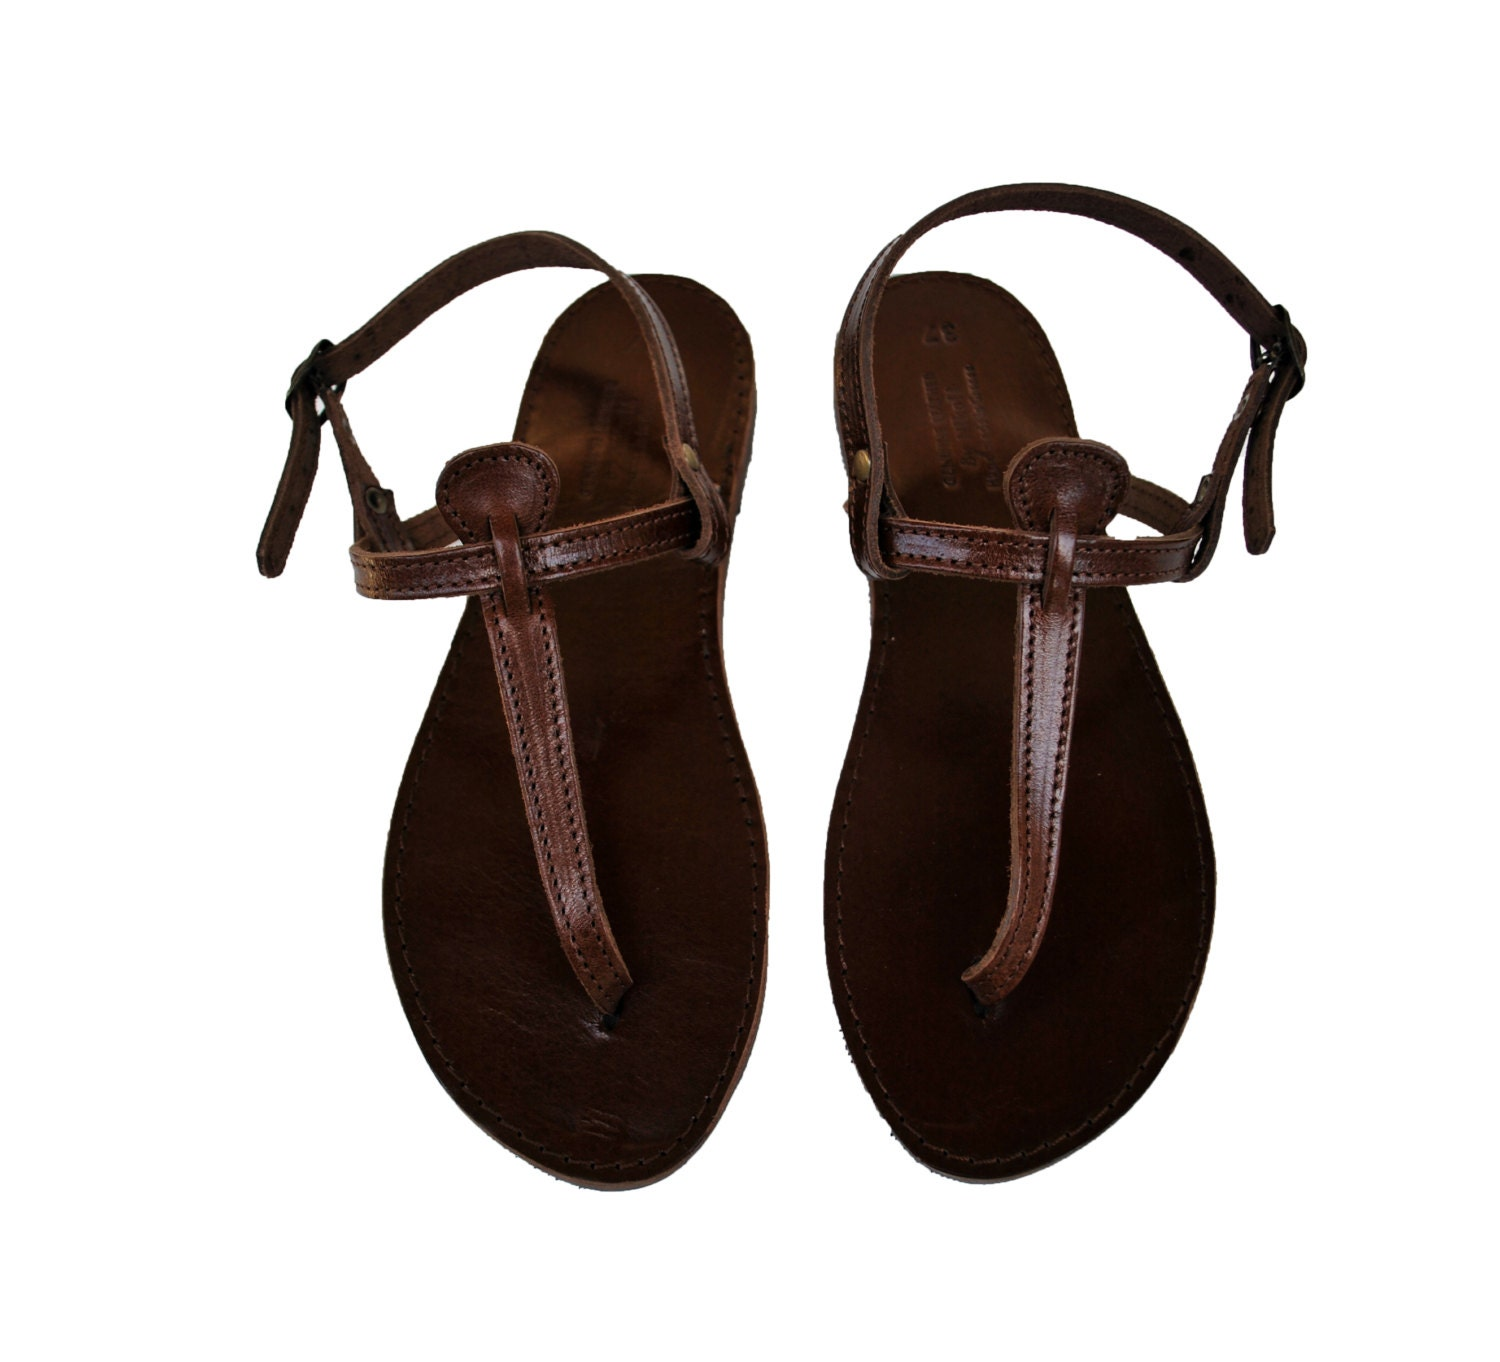 Womens sandals etsy -  Zoom